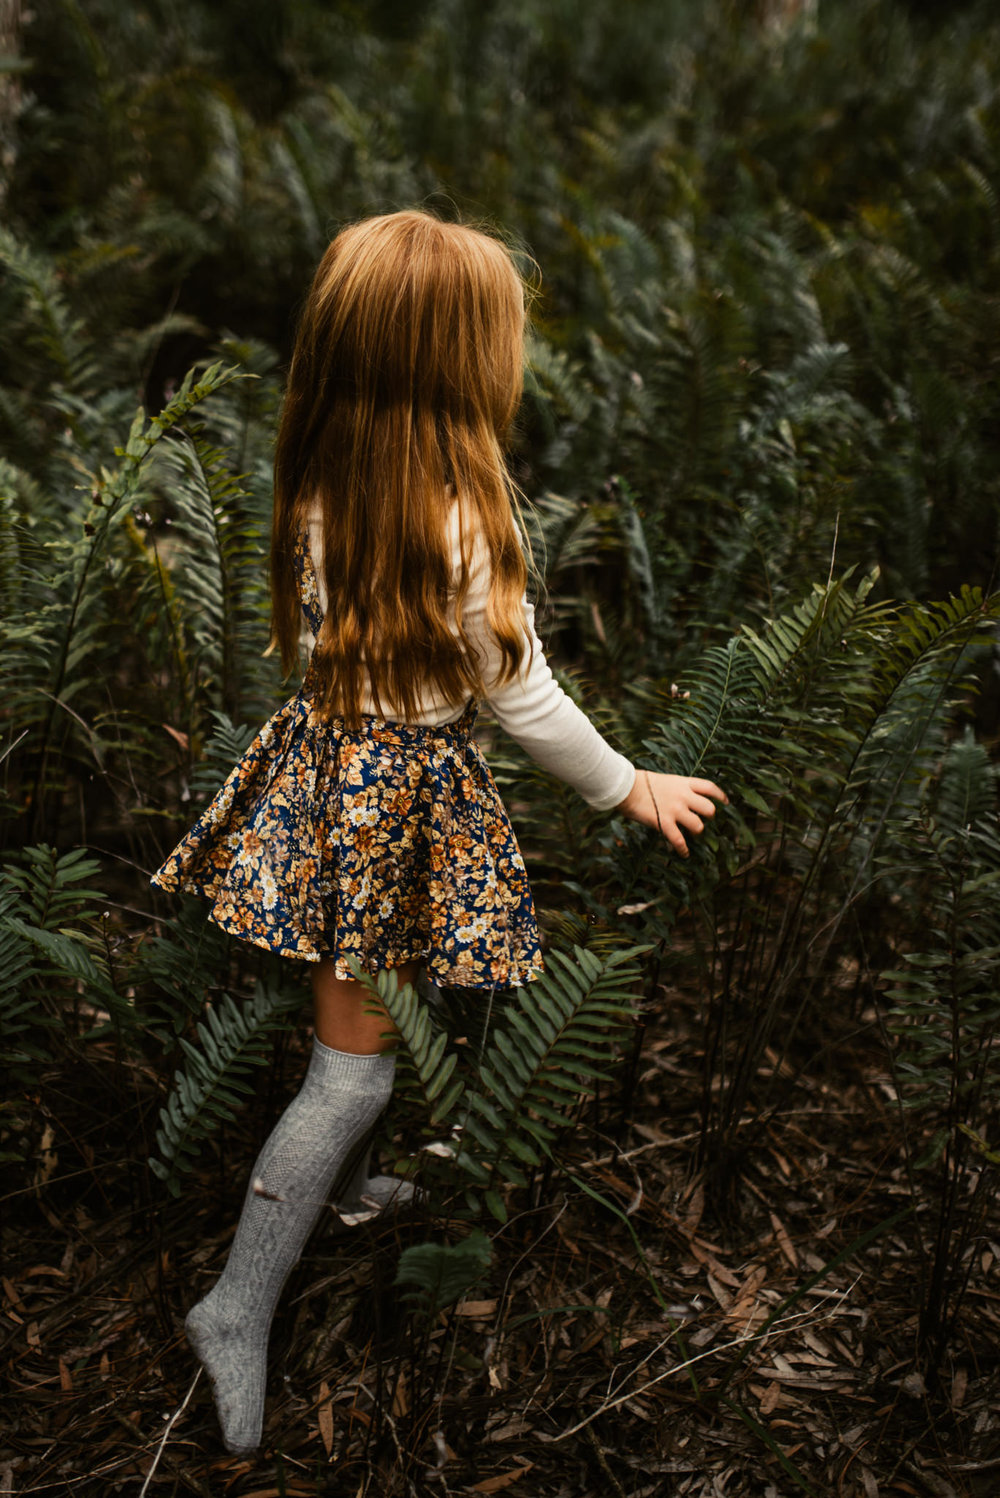 twyla jones photography - treasure coast florida - childrens adventure clothing commercial shoot--12.jpg